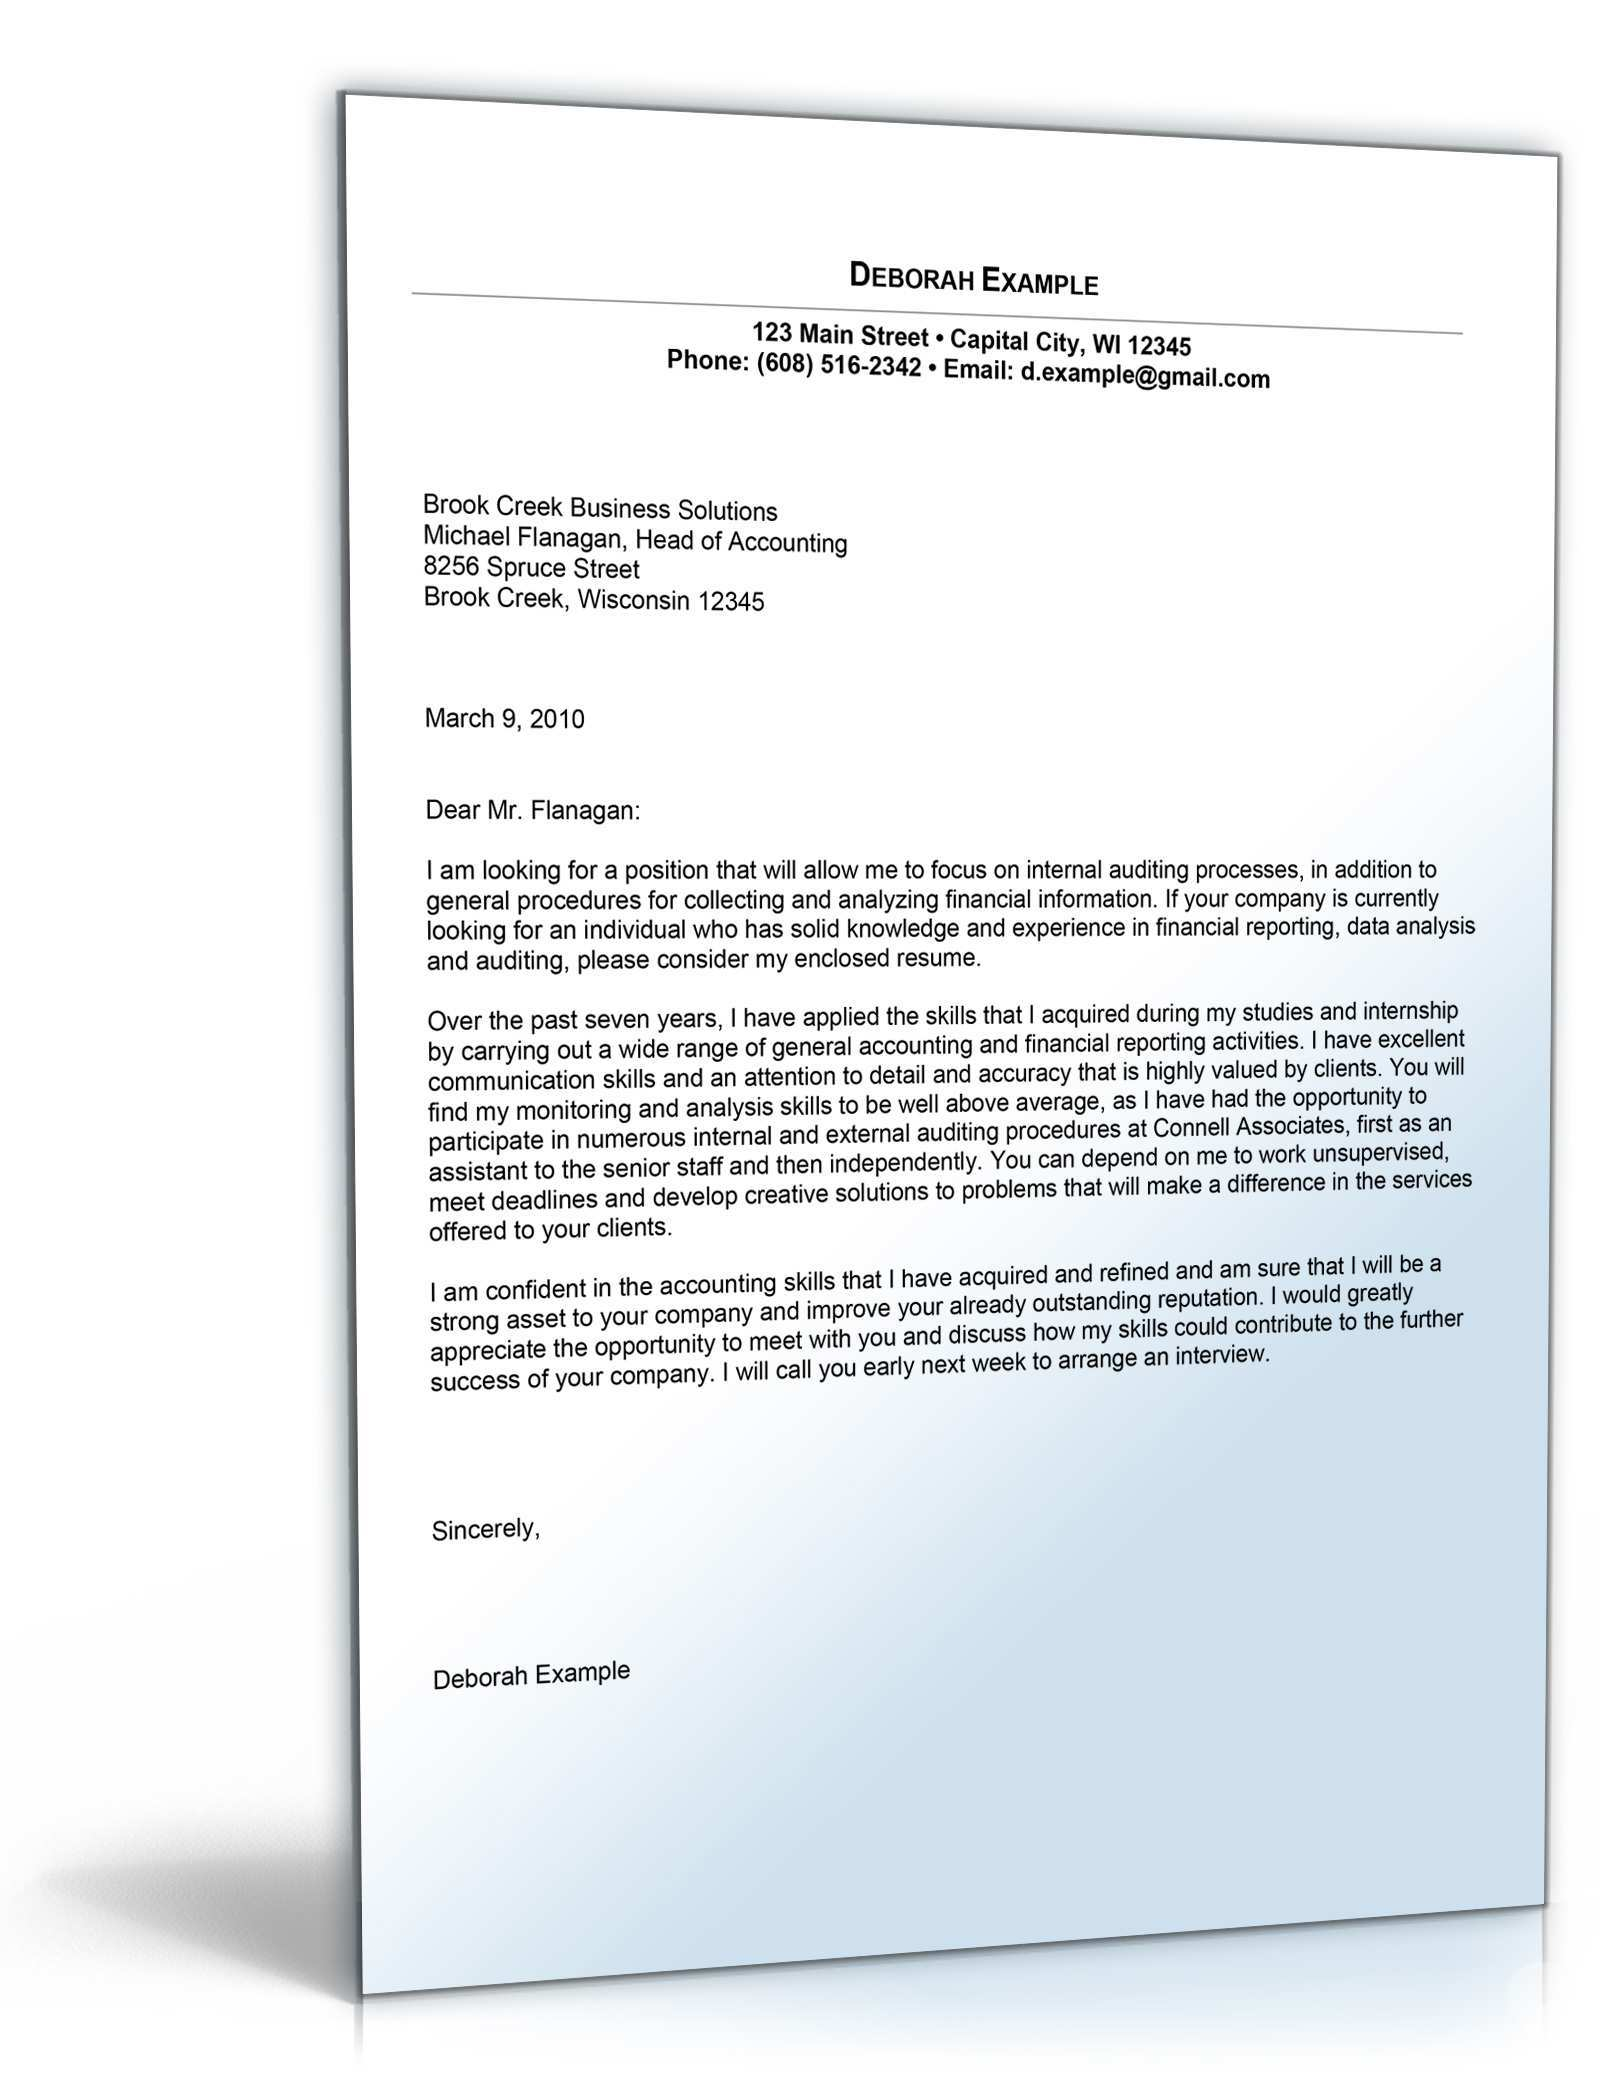 Sample Cover Letter For Accounting Position De Bewerbung Download